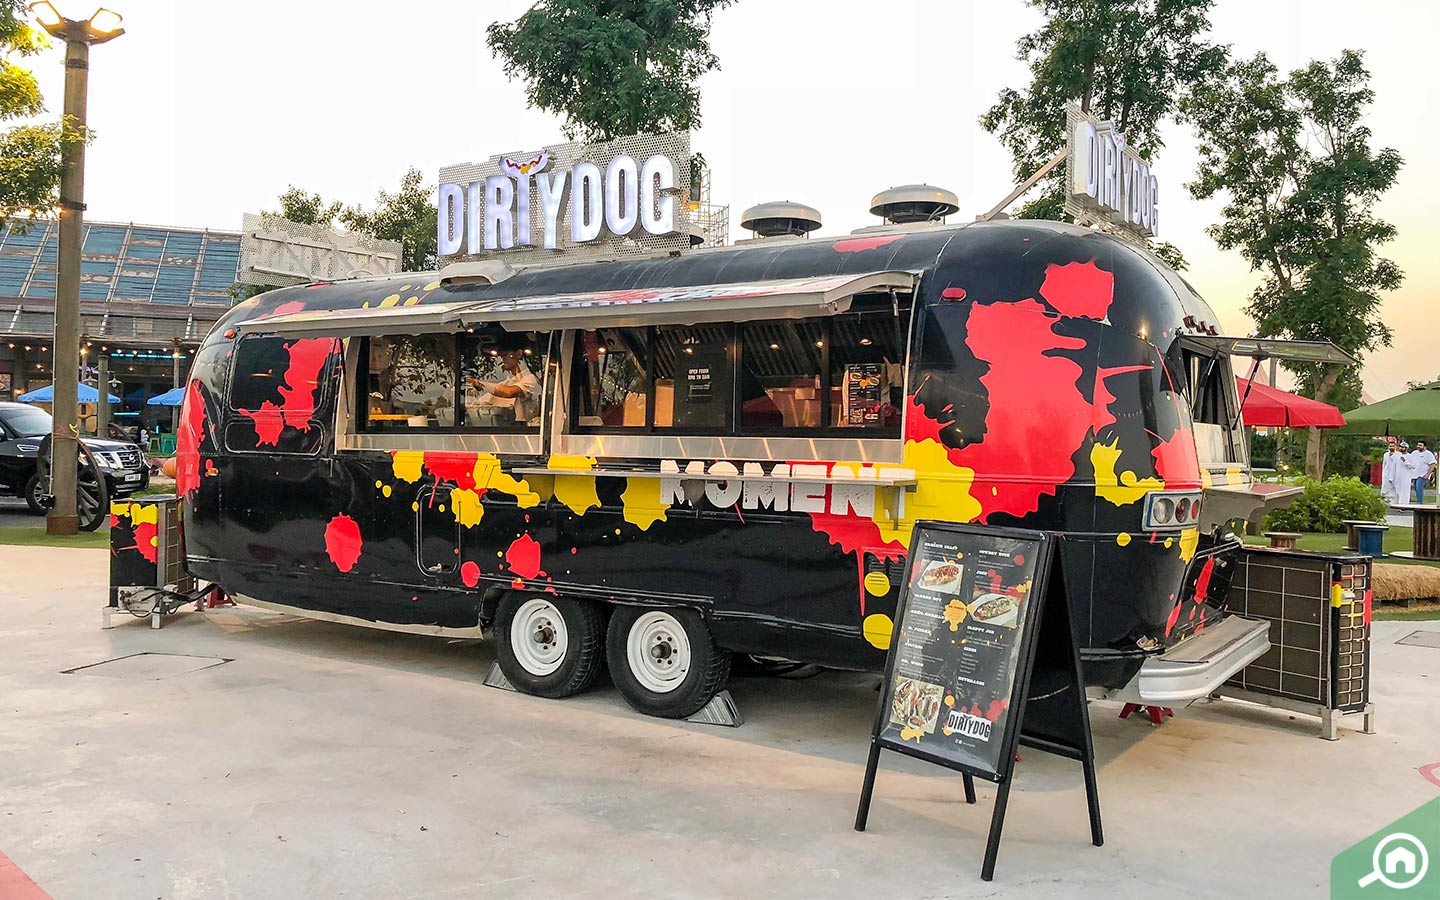 Dirty Dog food truck in Dubai